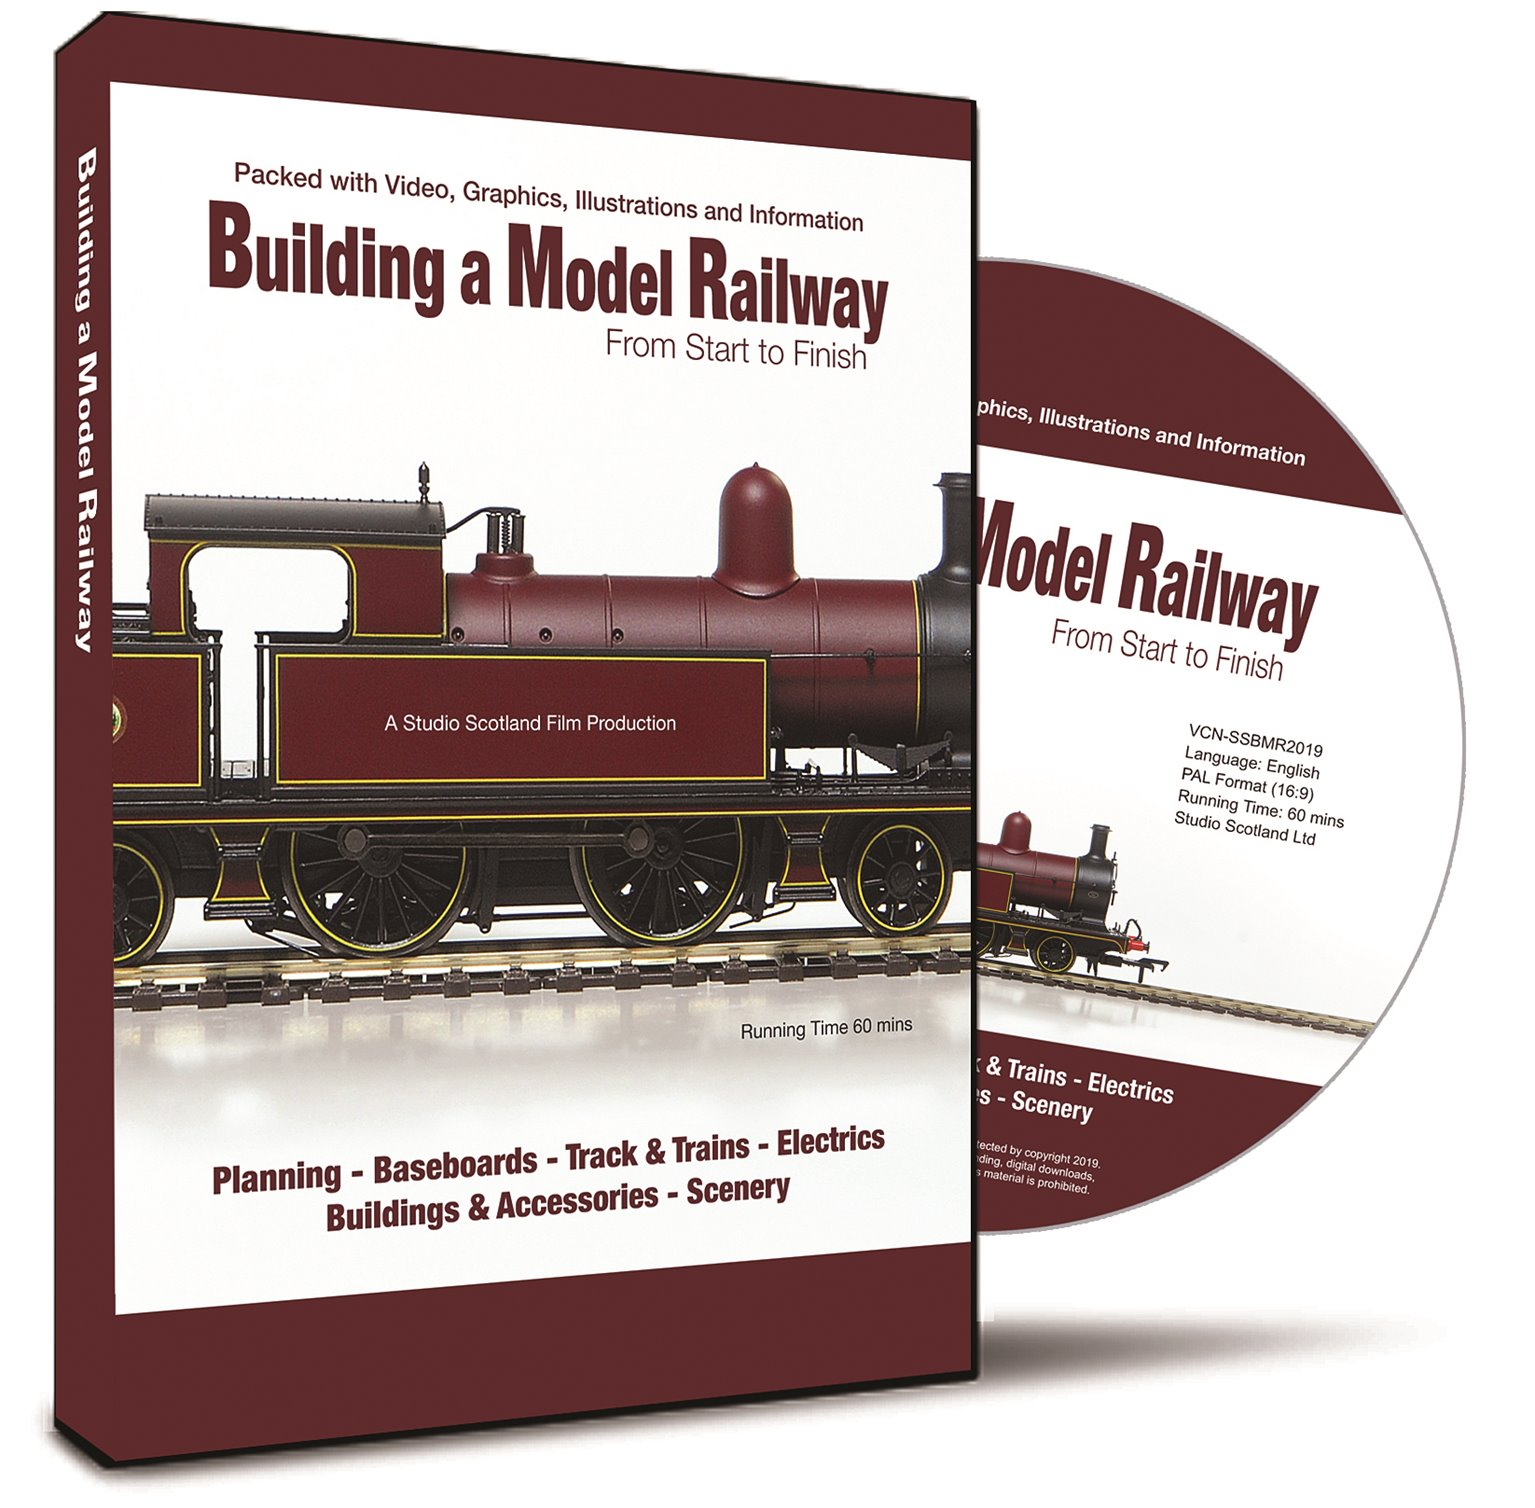 Building a Model Railway From Start to Finish DVD